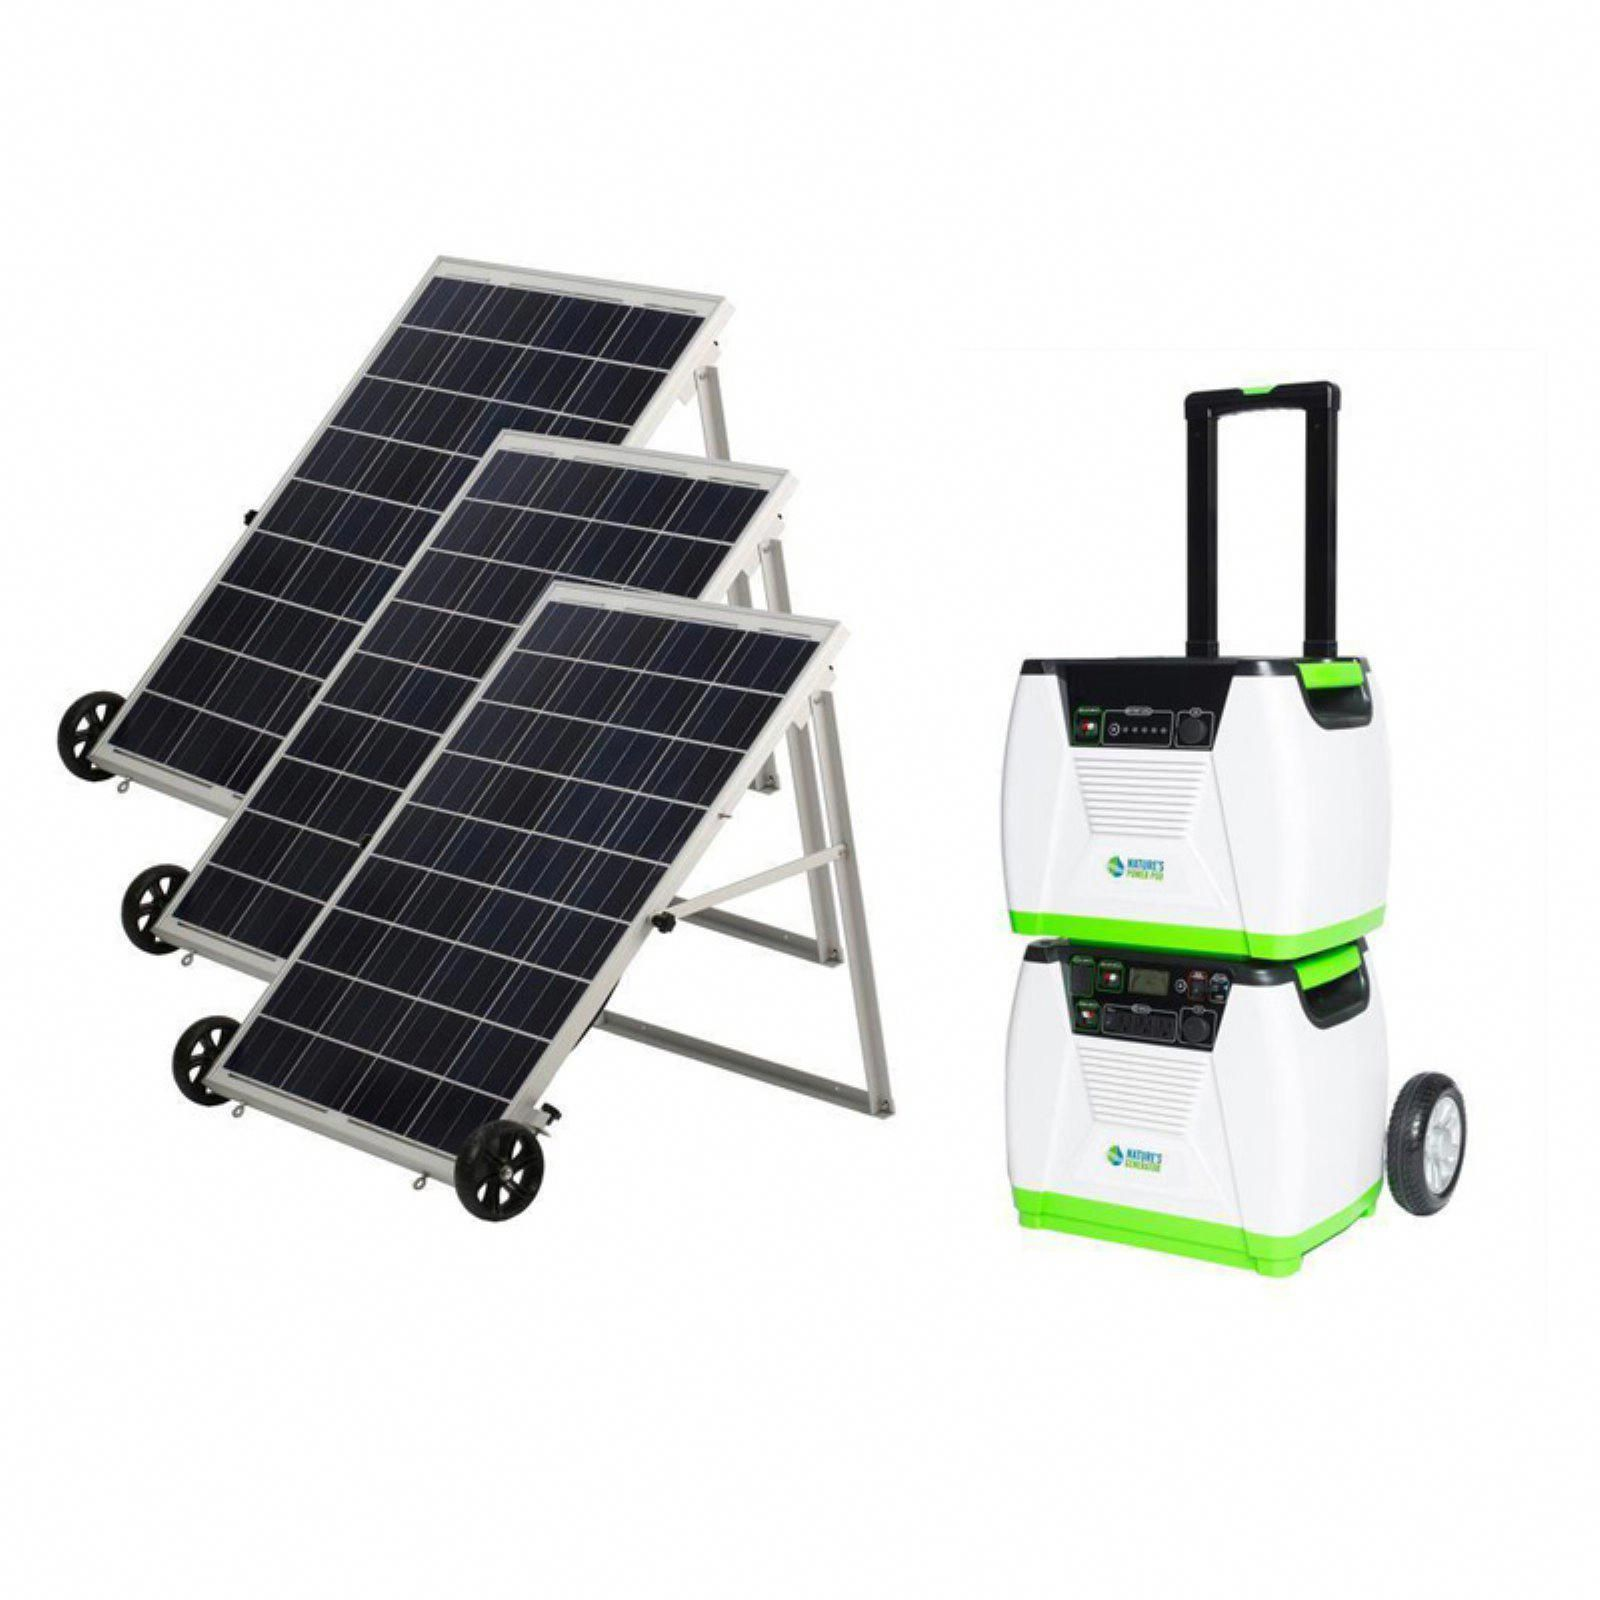 Pin By Keep Our Planet Healthy On Help The Planet With Renewable Energy Solar Panels Solar Powered Generator Solar Energy Panels